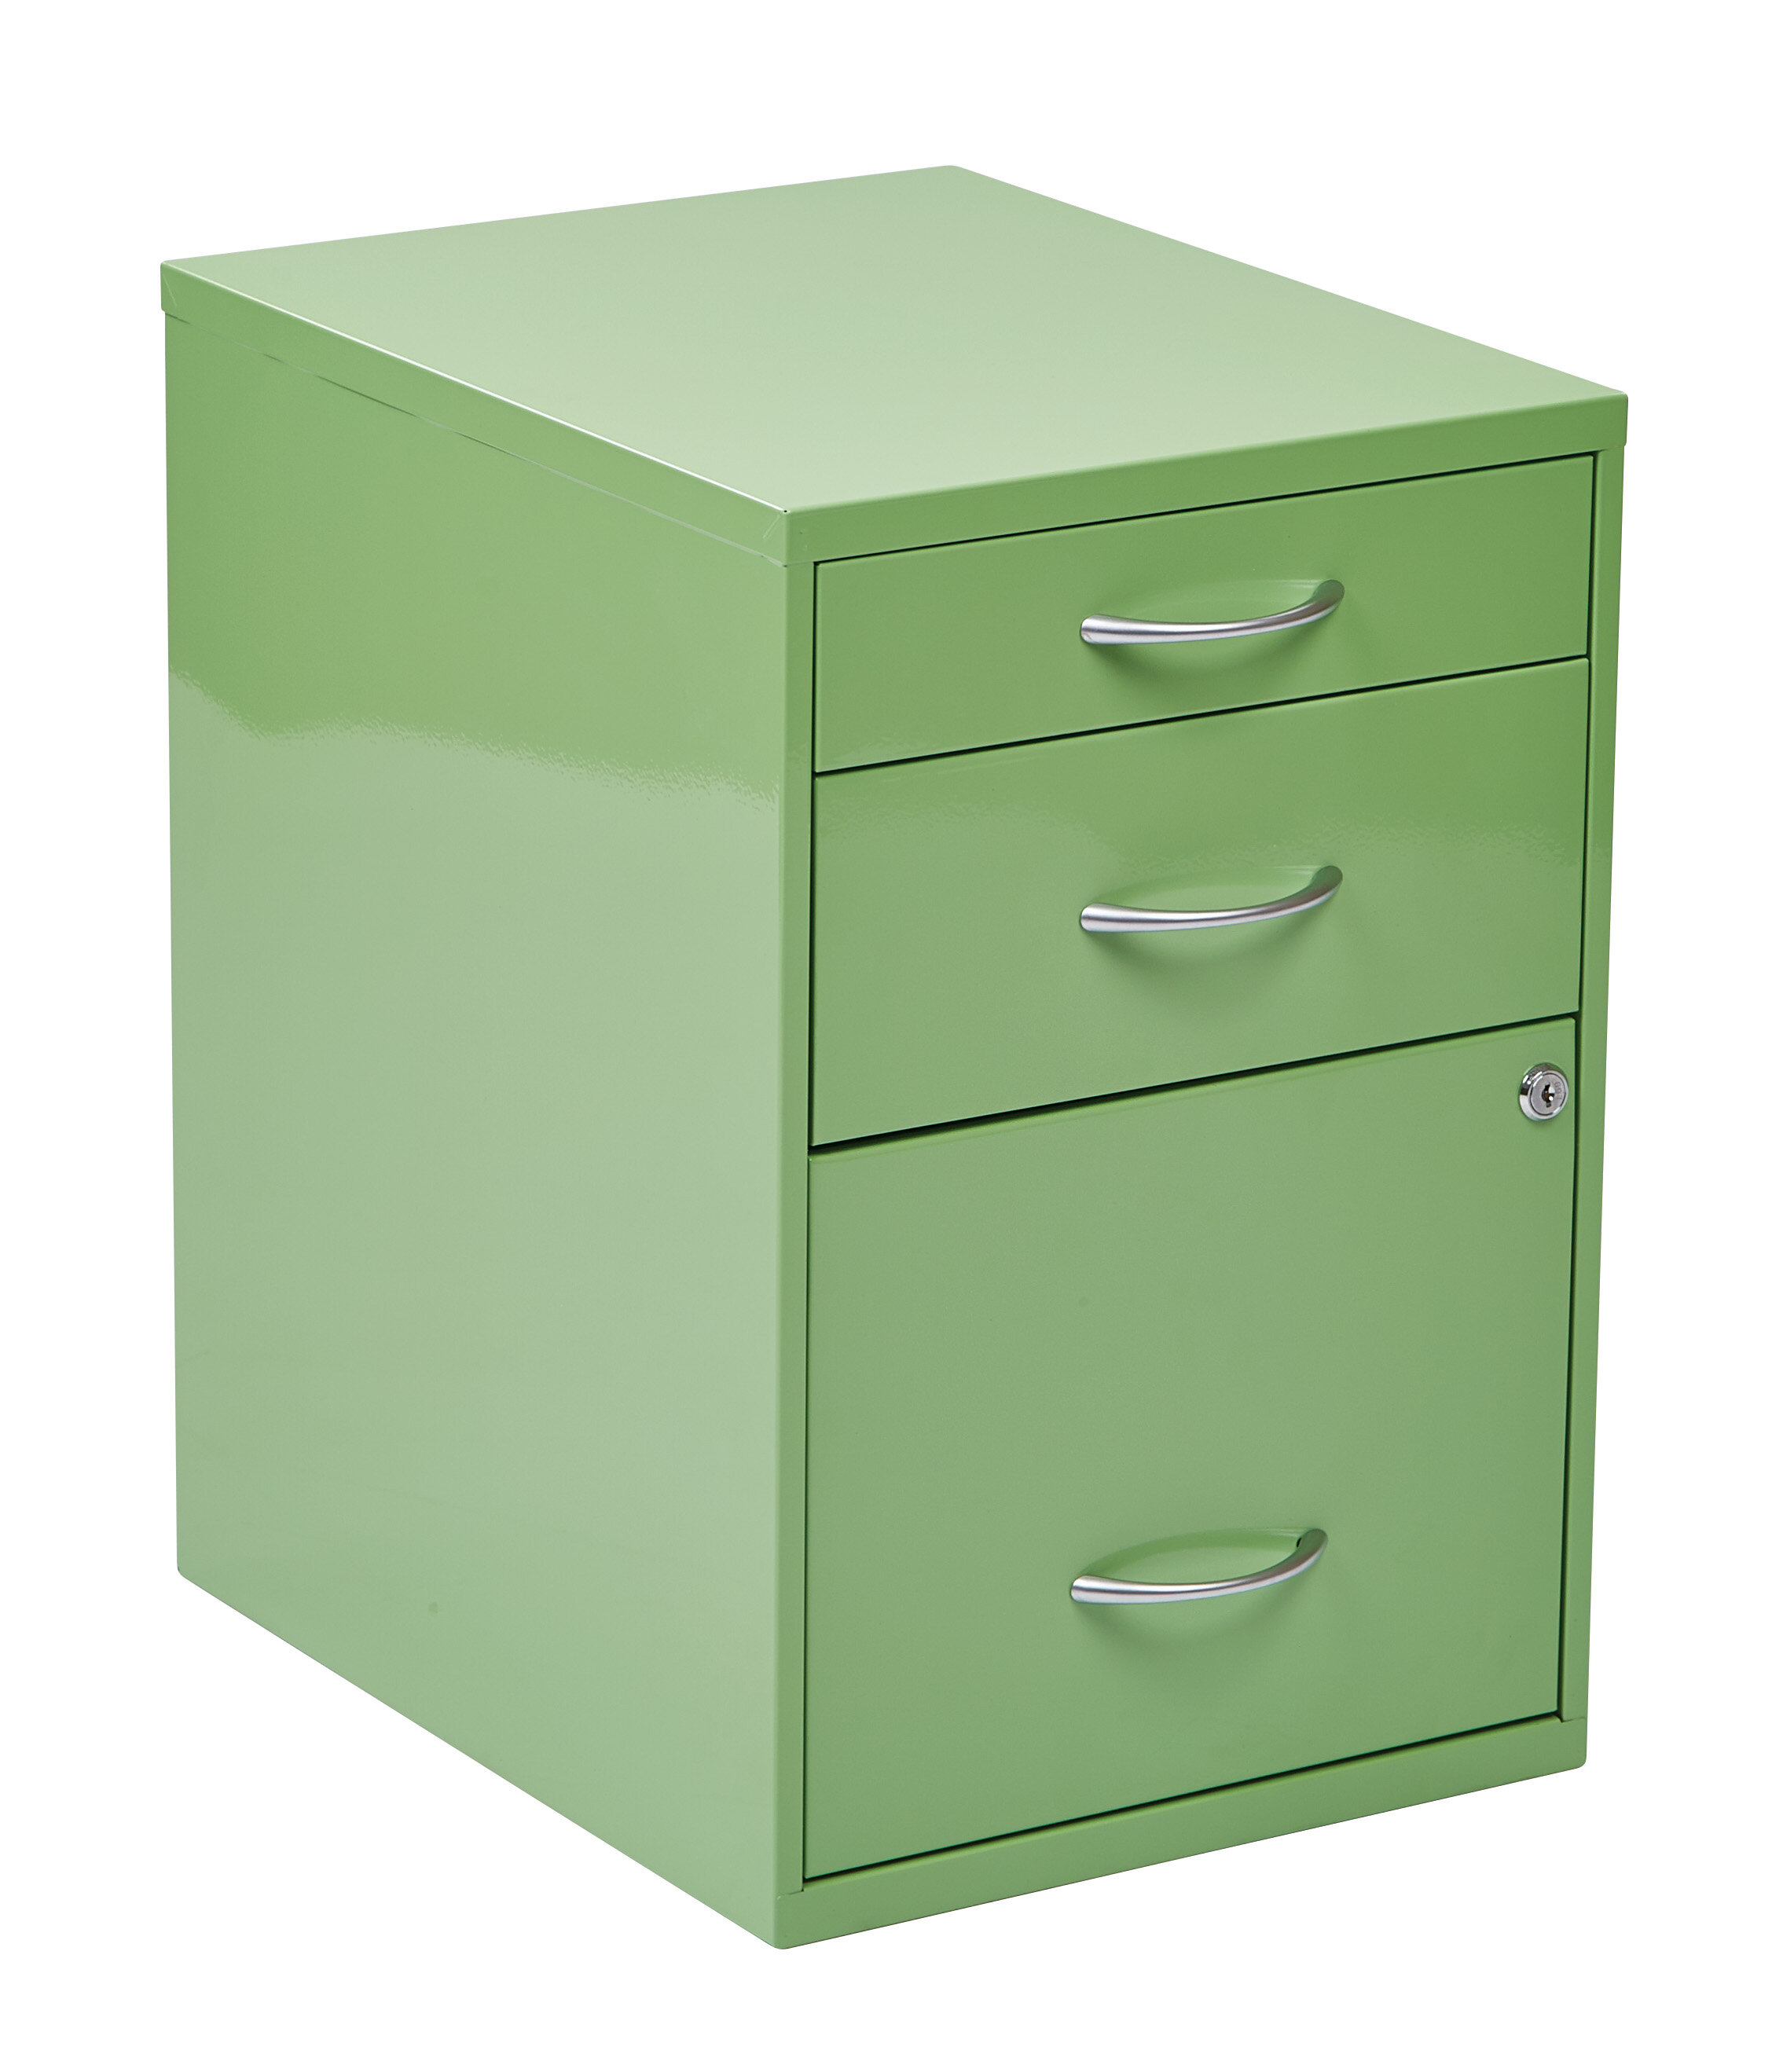 within filing metal cabinet design best furniture file vertical walmart home measurements x ideas drawer